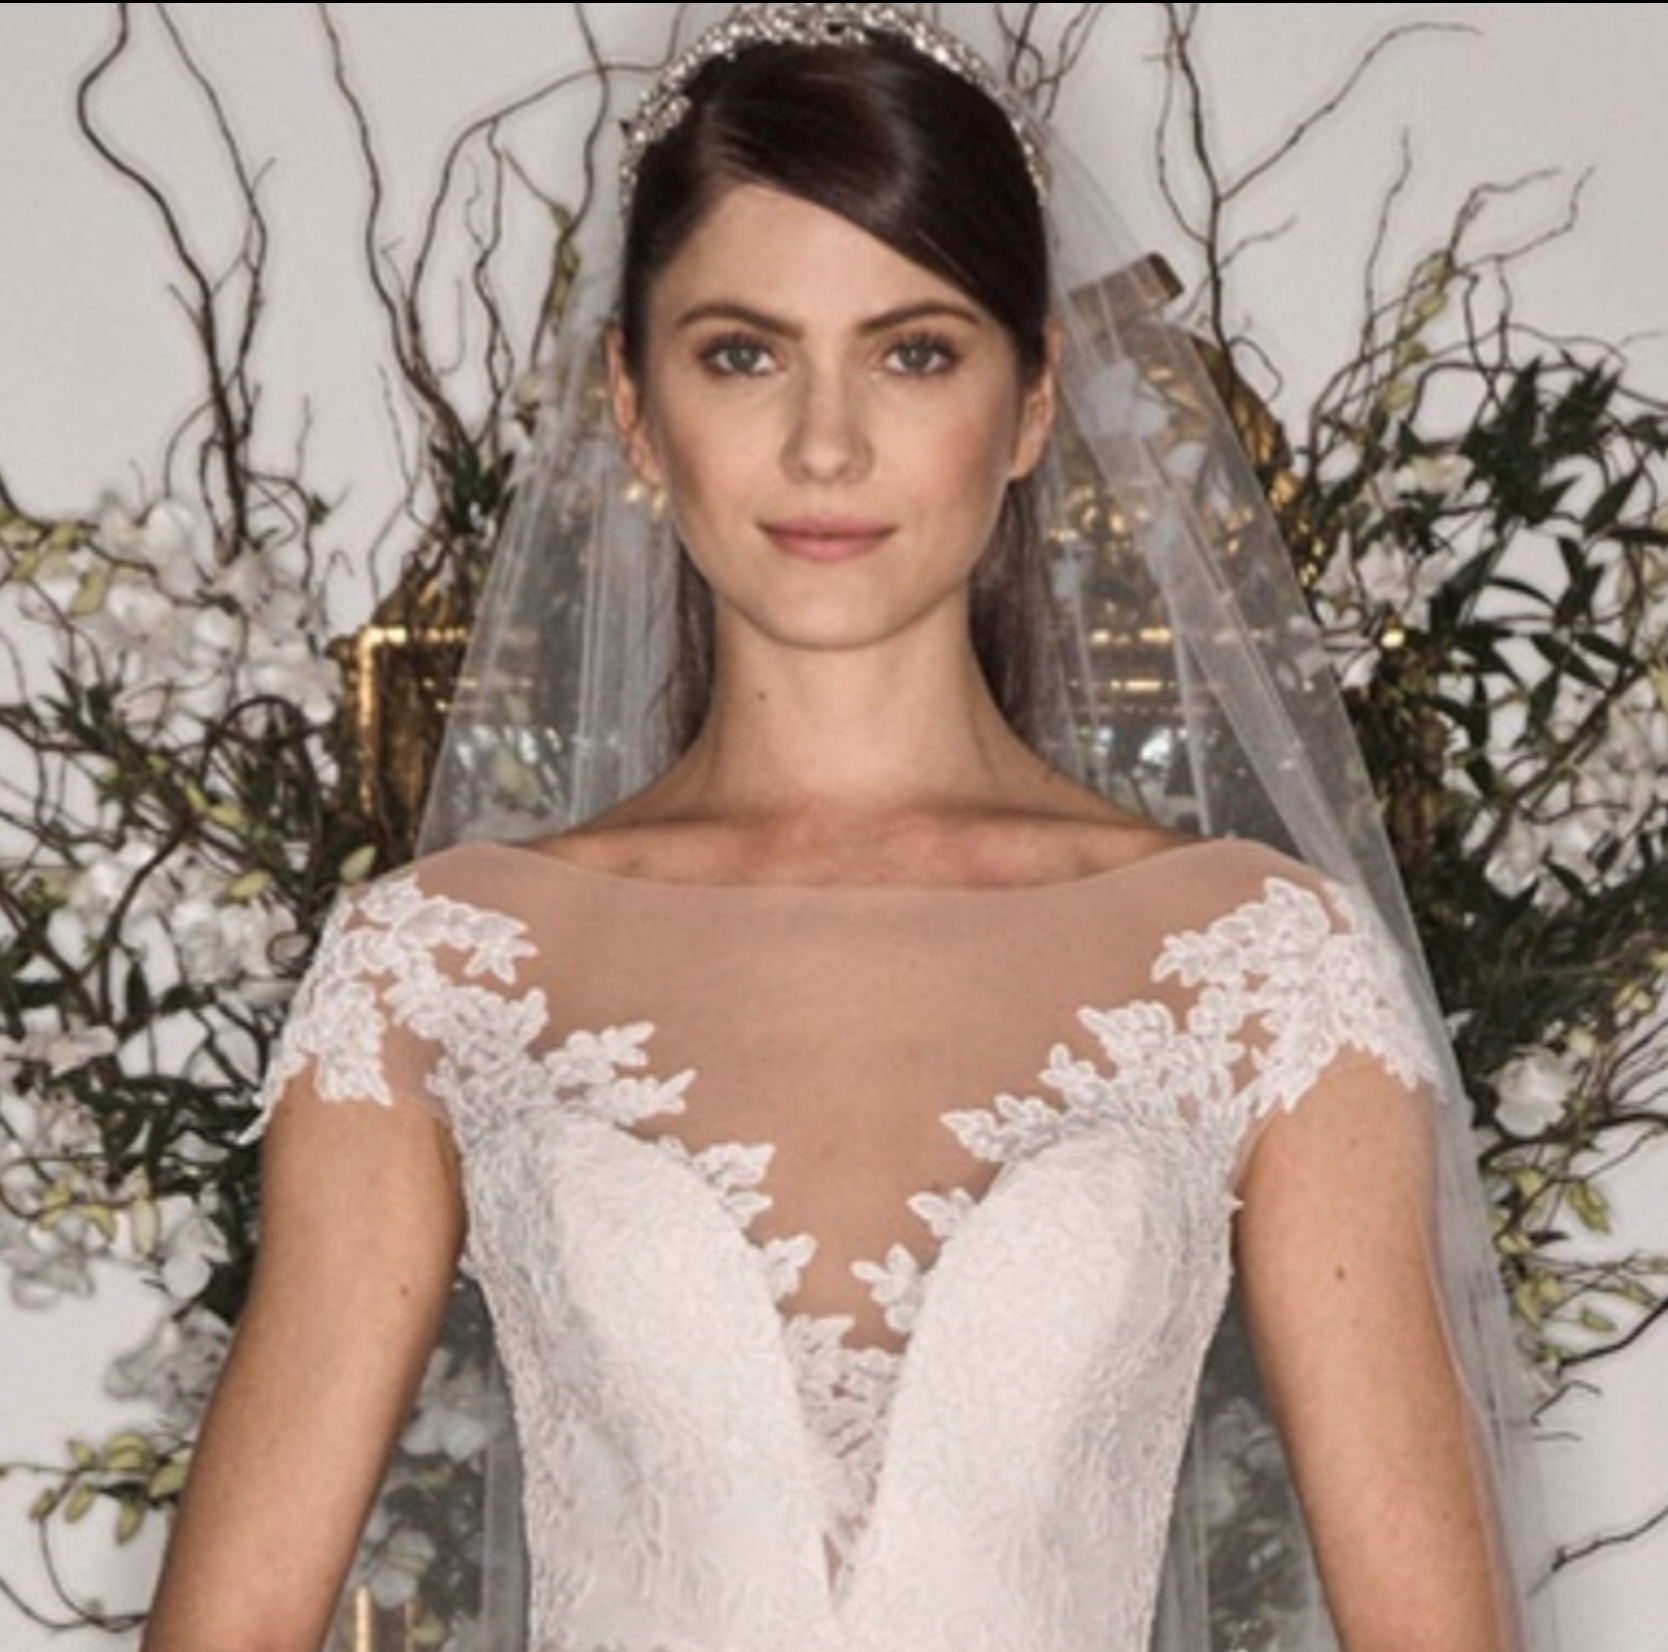 4180b99dd2ab It is a wonderful time to be a bride! The current offerings of exquisite  fabrics and beautiful silhouettes are amazing. From the designers' creative  ...